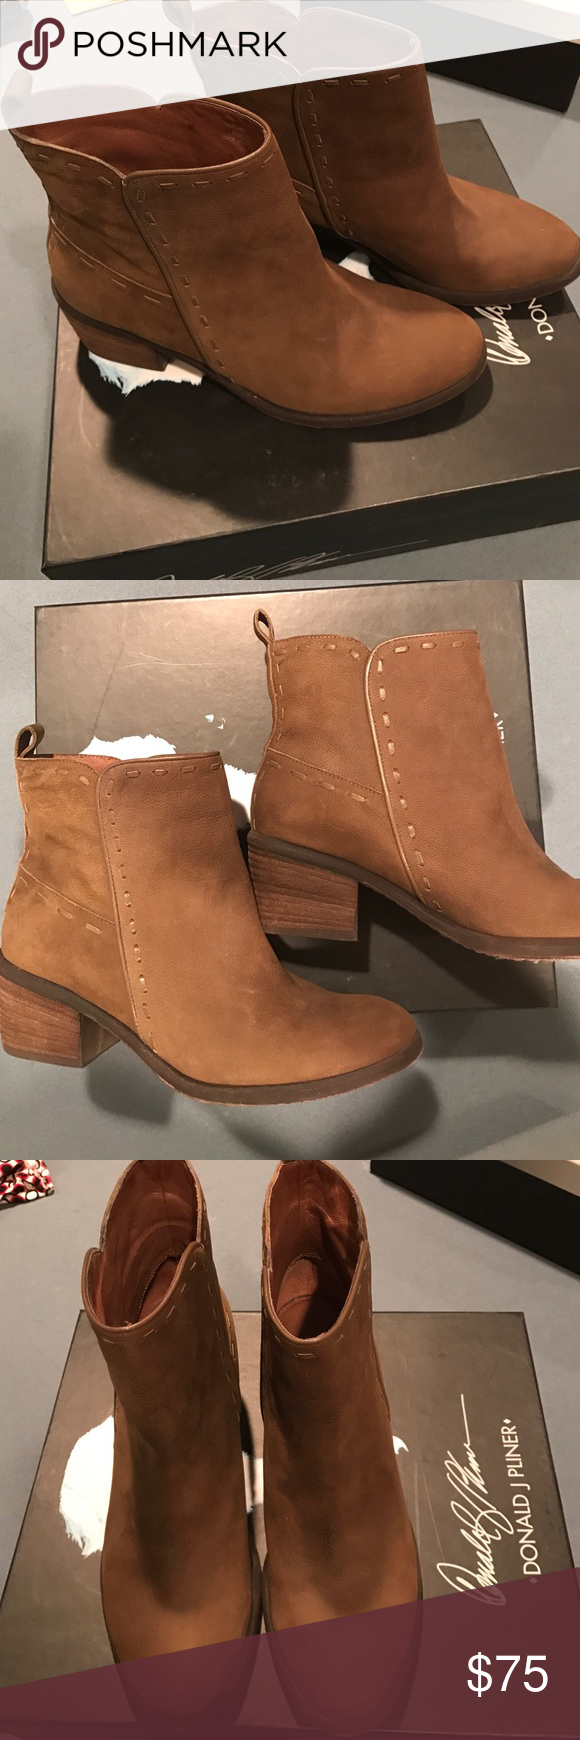 Suede boots with stitched accents. stacked heel Suede boots are a bit deeper in color than these photos. So cute with a skirt or jeans! Comes with original box Donald J. Pliner Shoes Ankle Boots & Booties